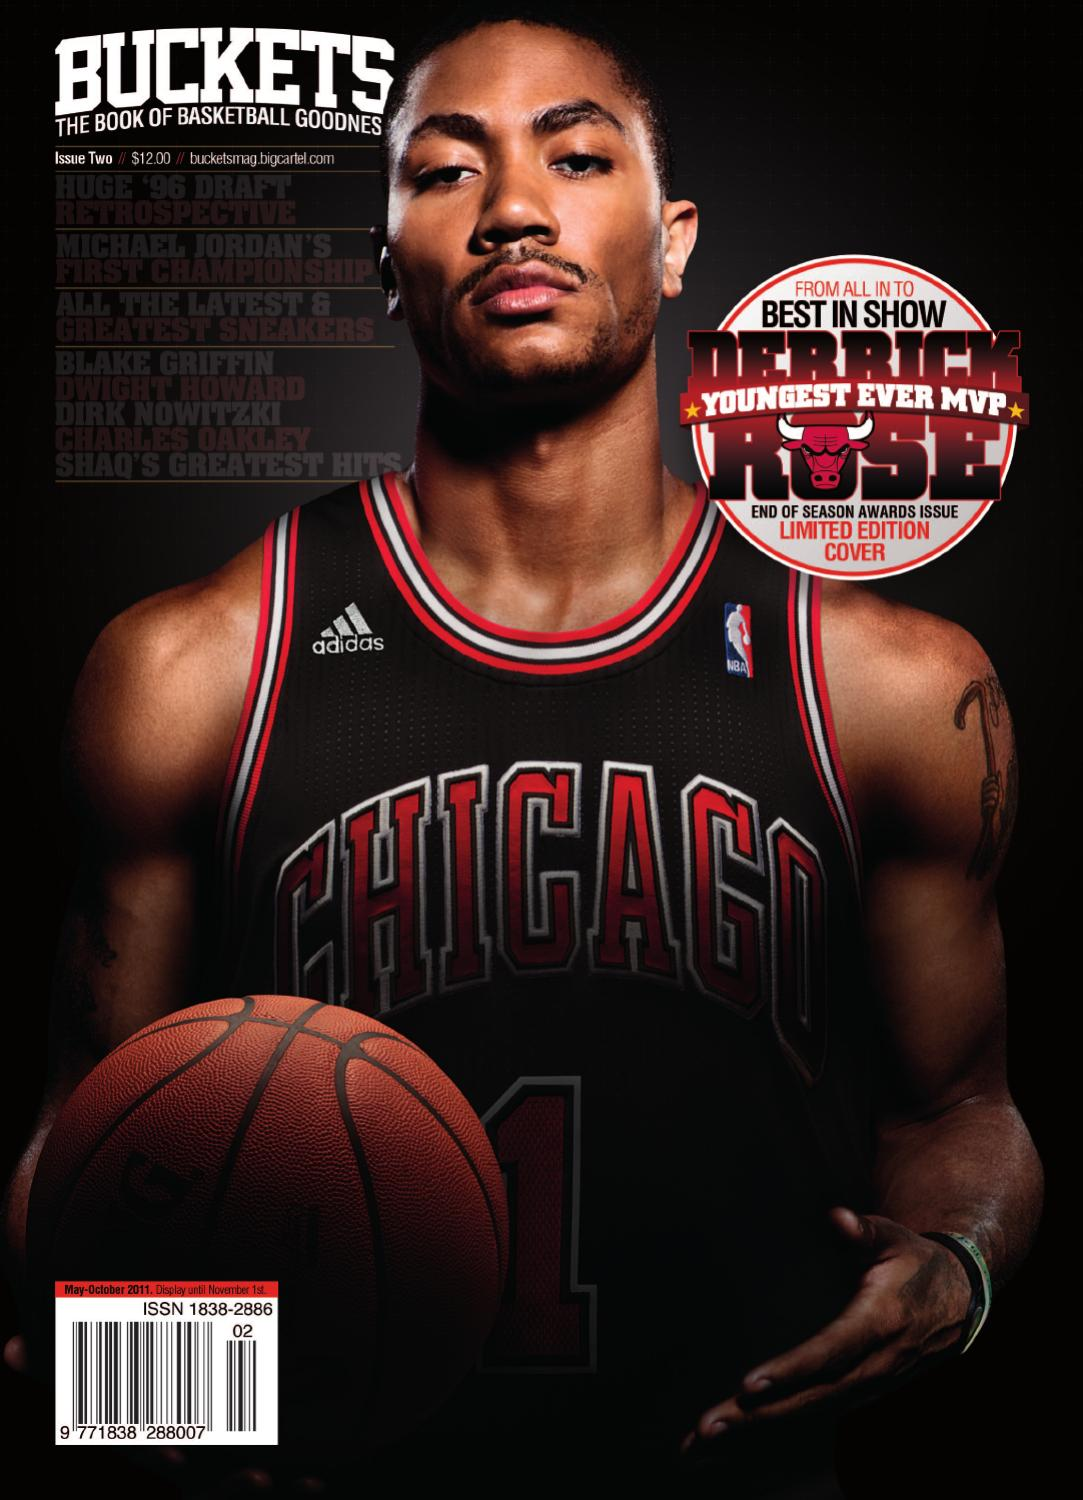 ff556162432 BUCKETS: The Book of Basketball Goodness. by BUCKETS Magazine - issuu